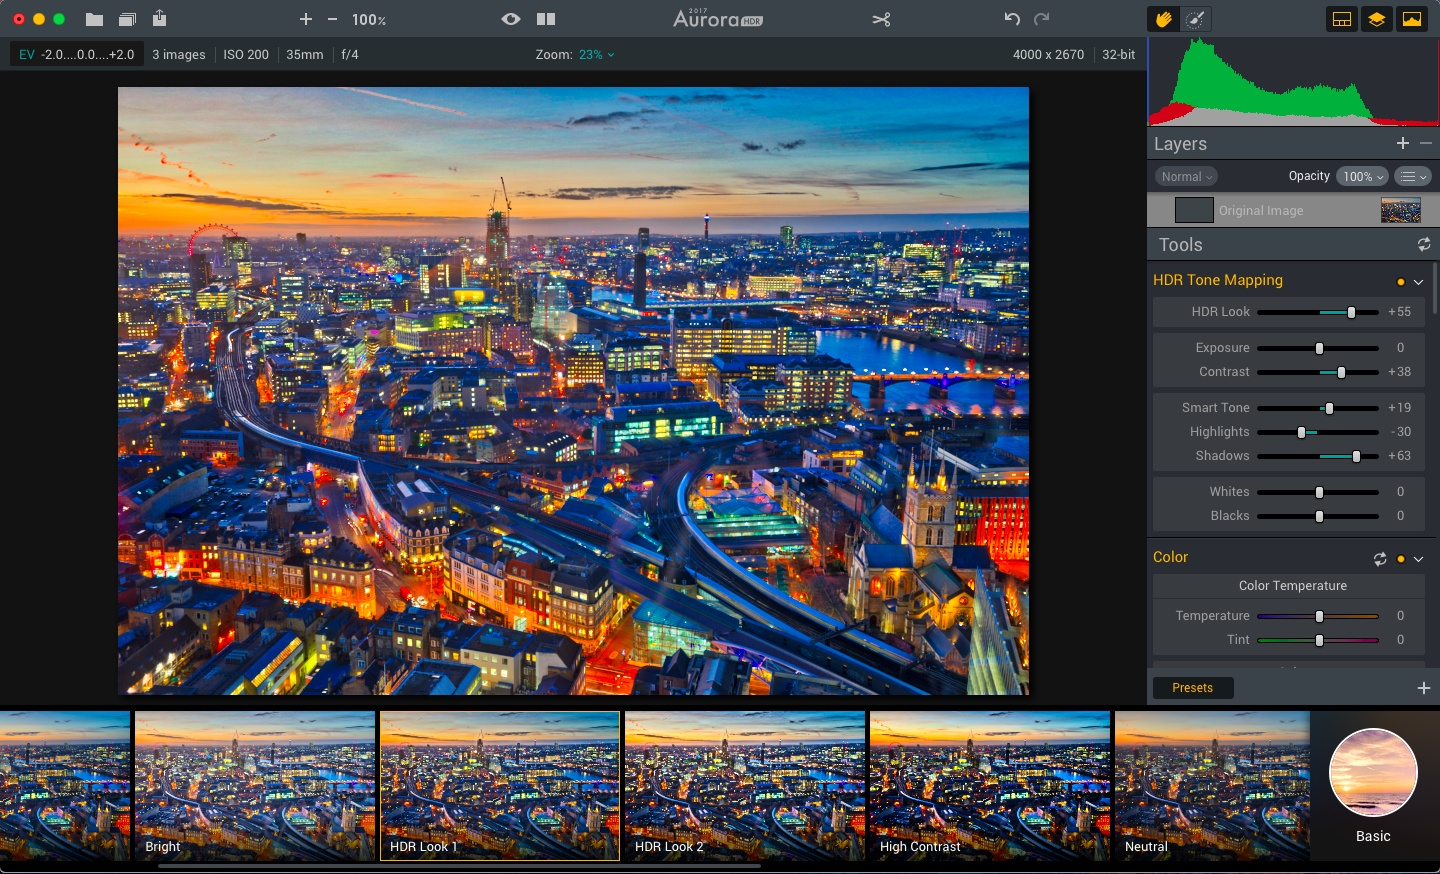 The best and most advanced HDR software